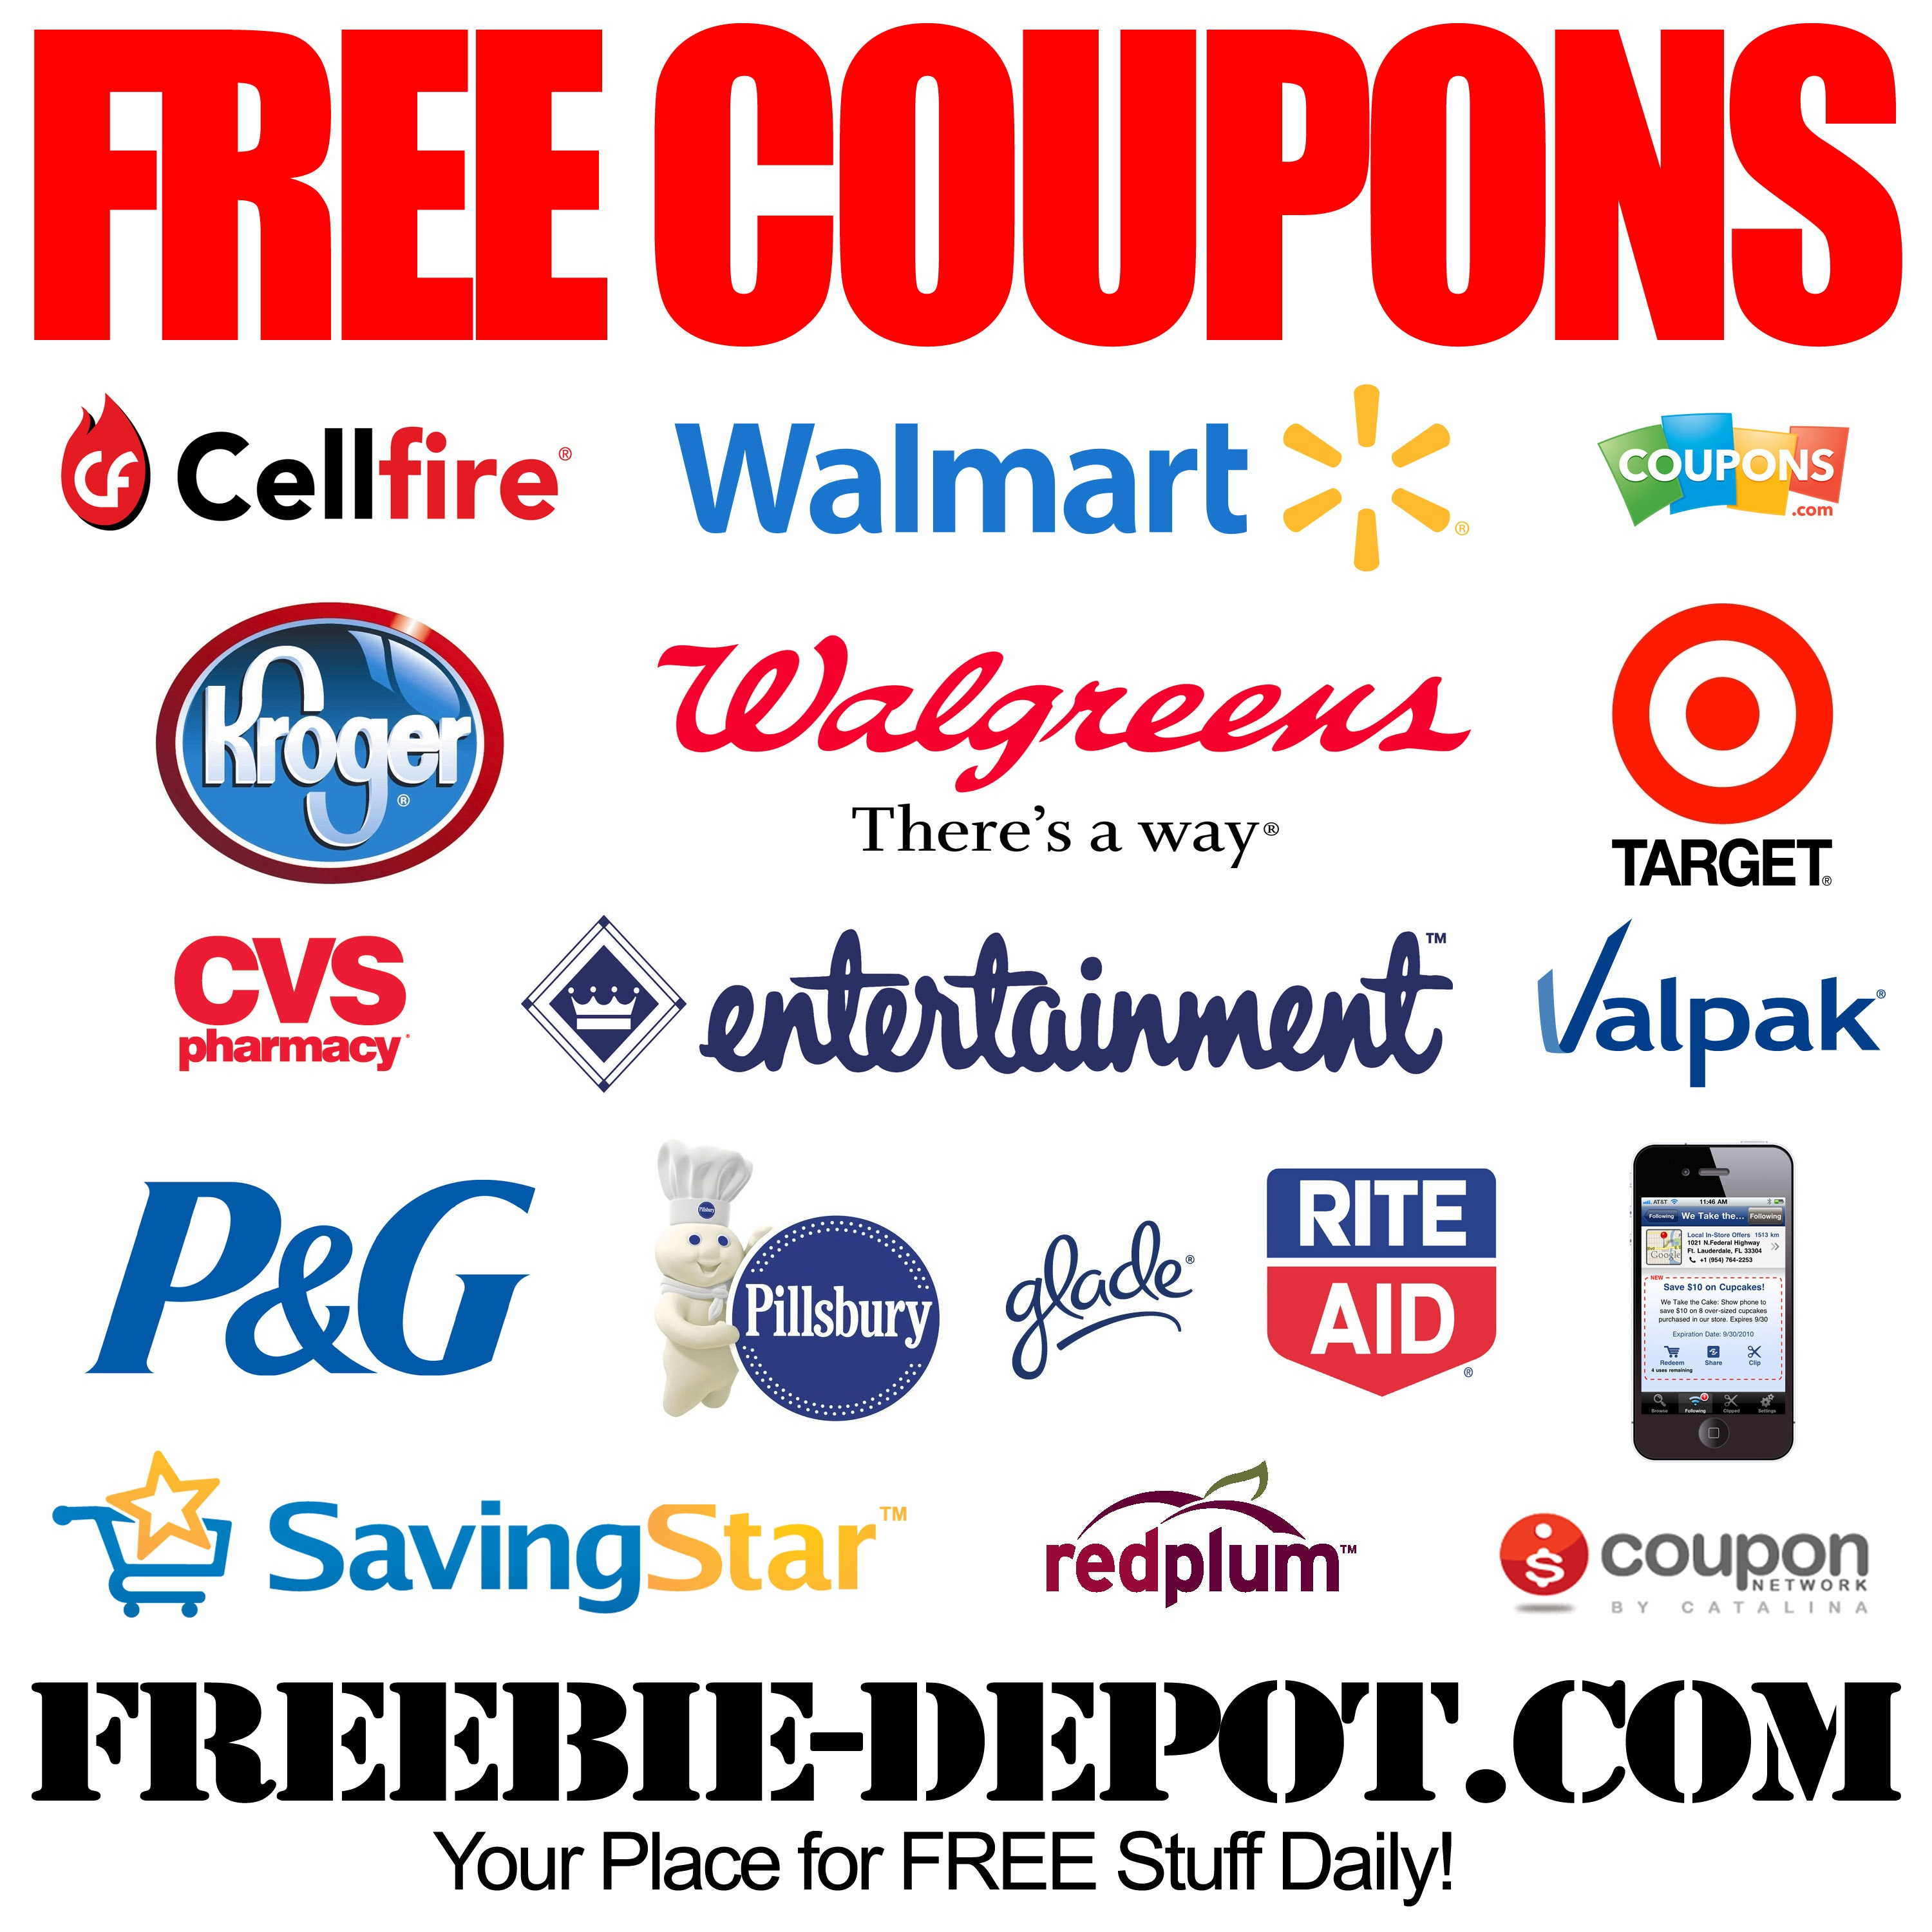 Free Stuff And Coupons : October 2018 Store Deals - Free Printable Las Vegas Coupons 2014